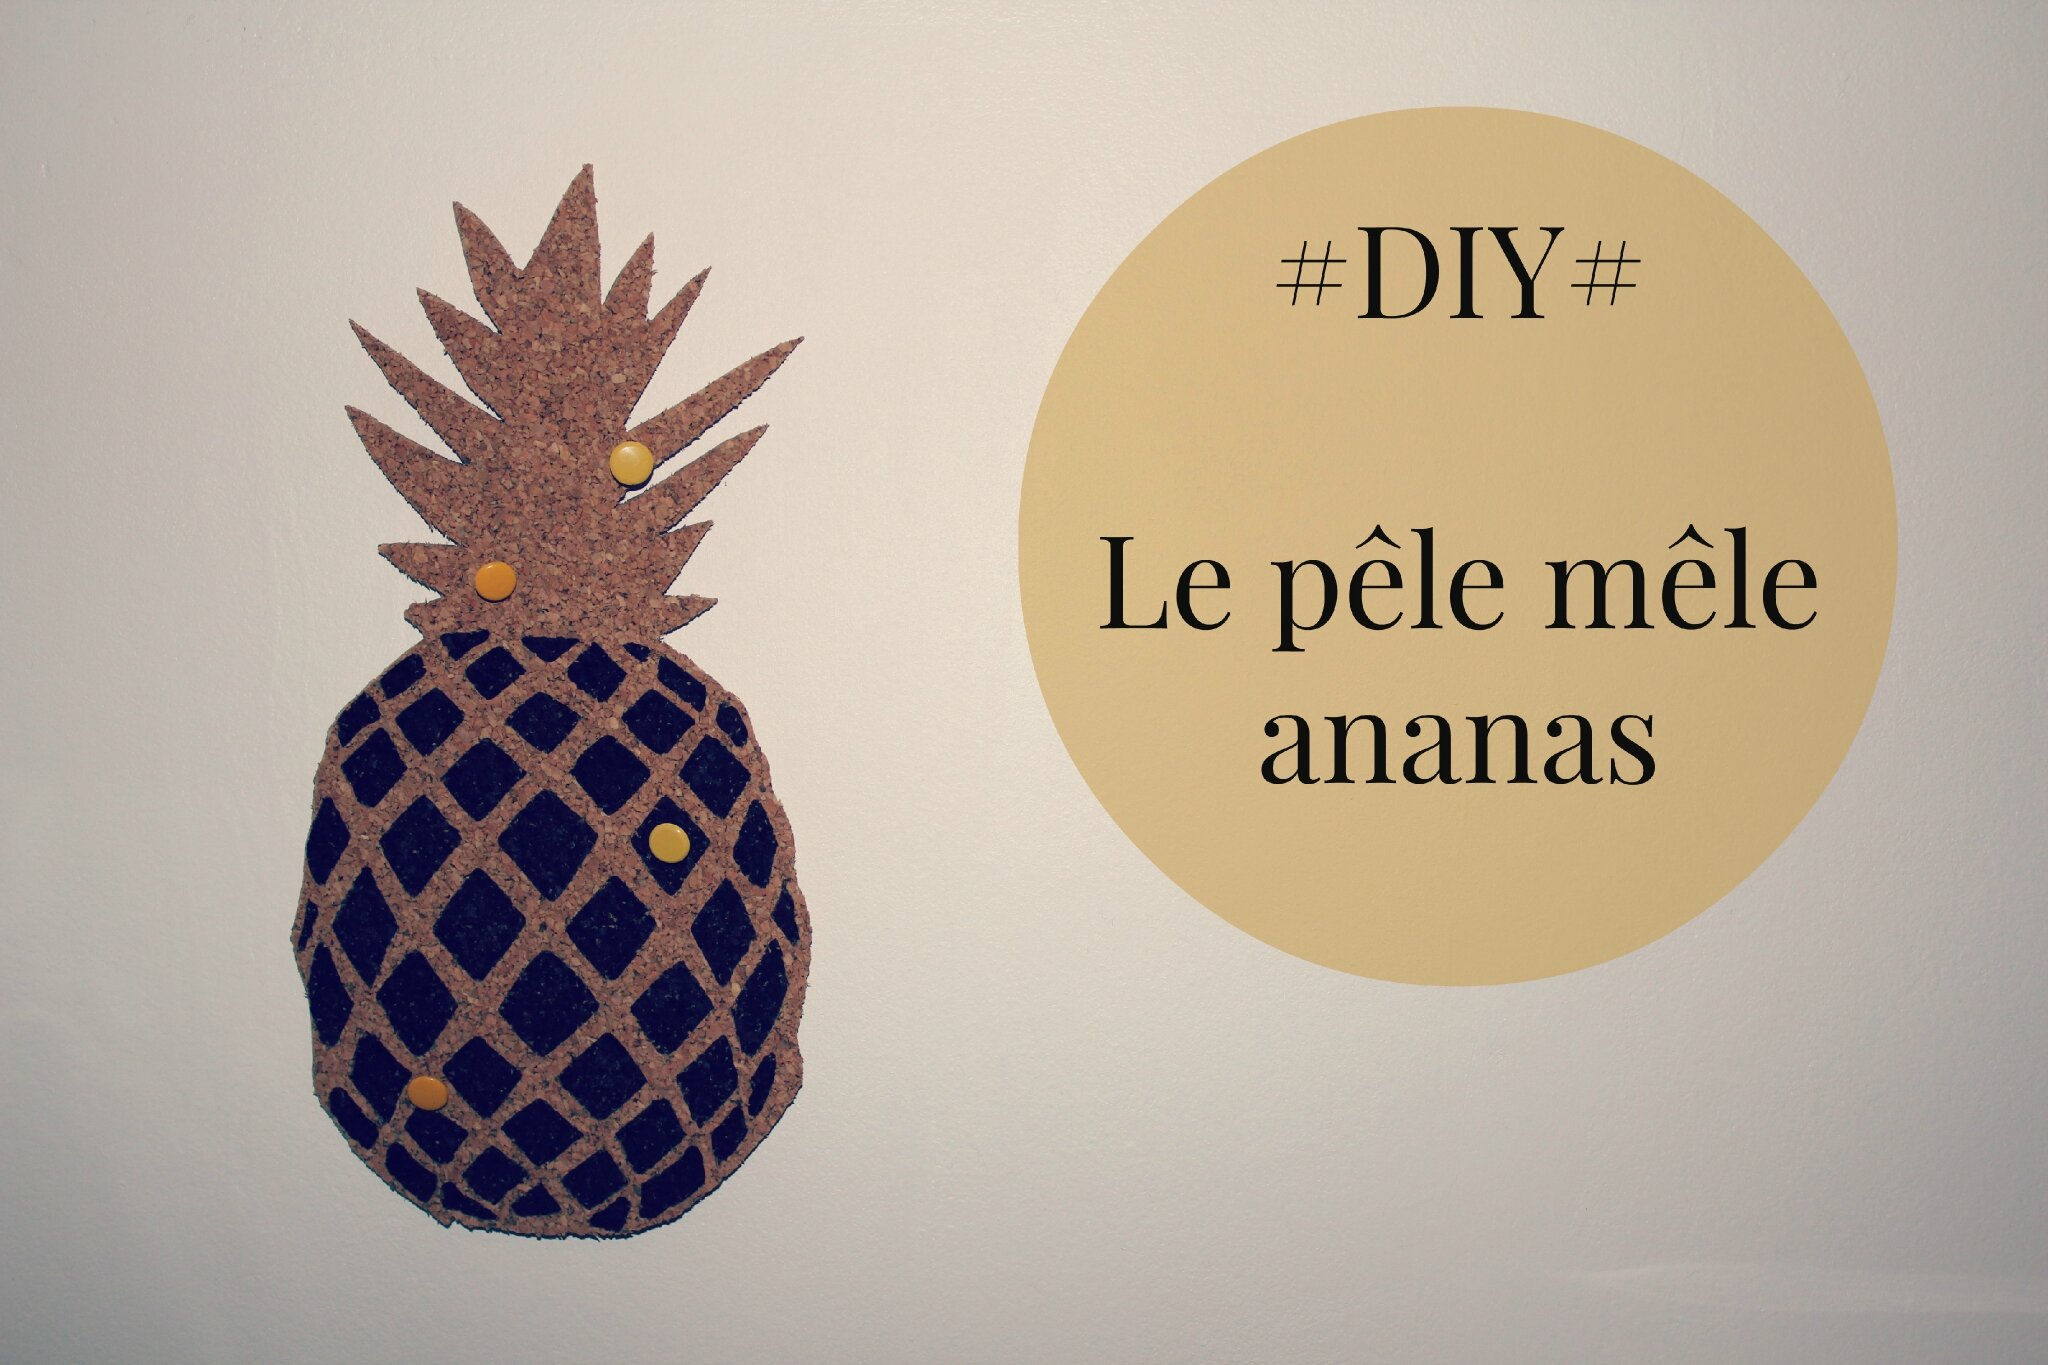 diy le p le m le ananas blog d coration diy photographie made by mademoiselle. Black Bedroom Furniture Sets. Home Design Ideas